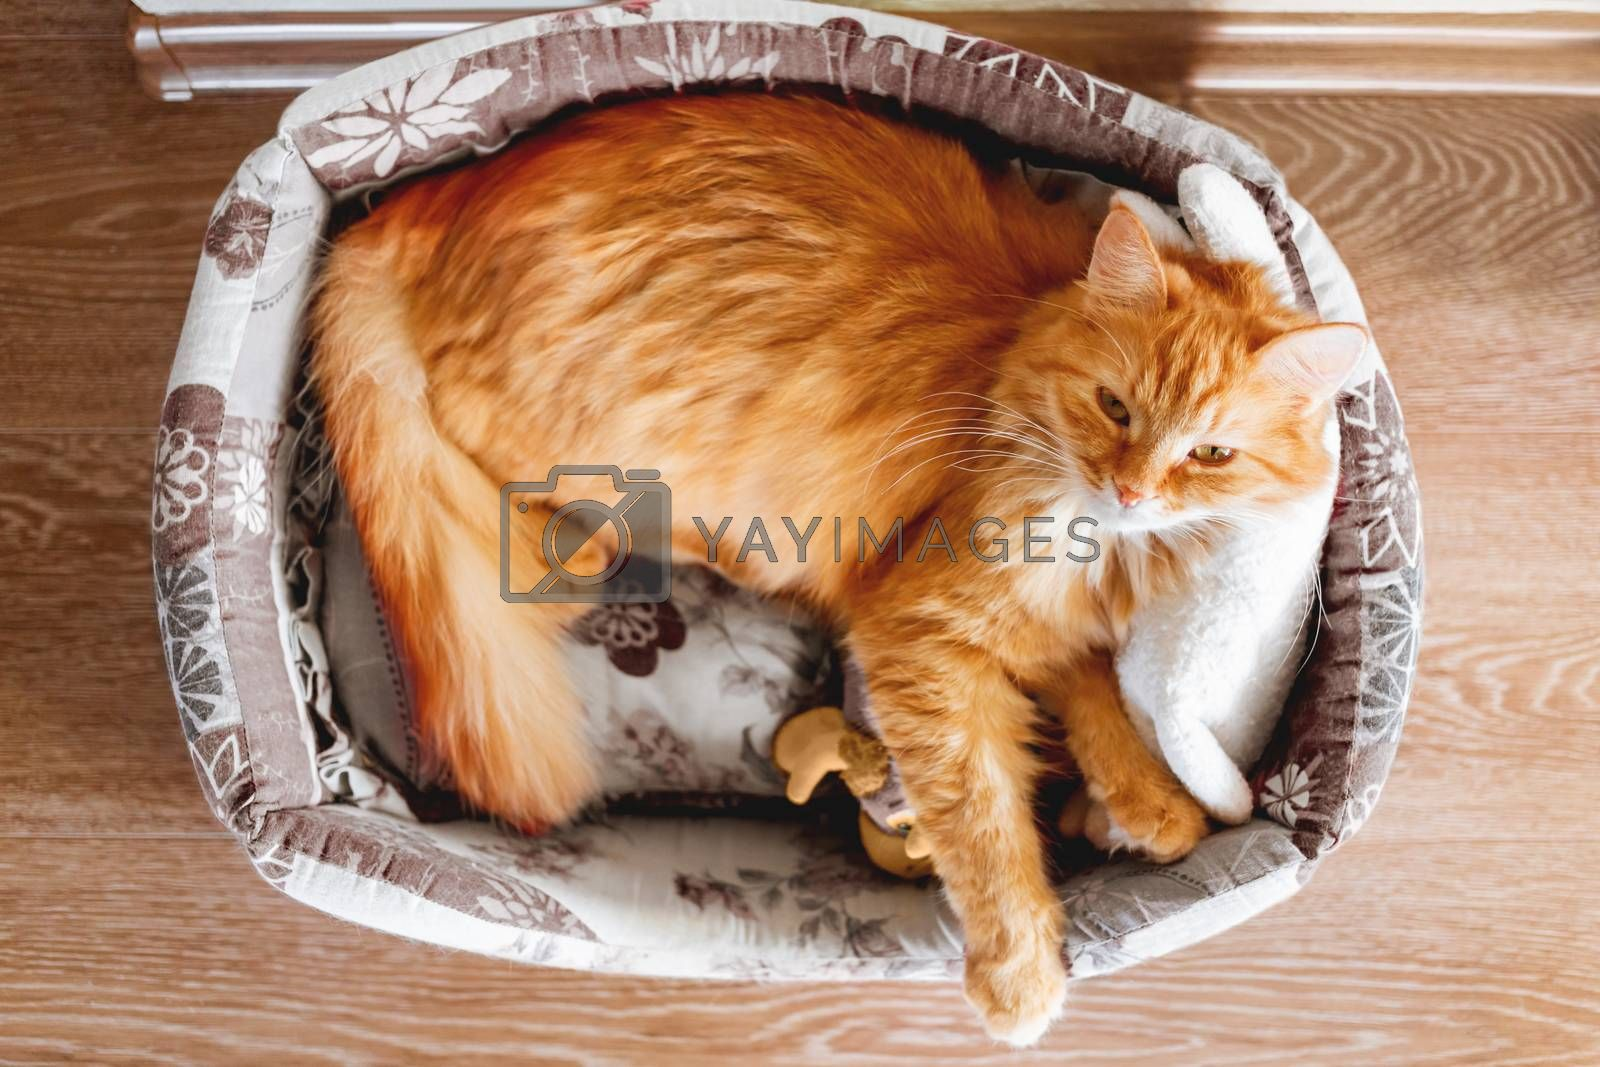 Top view on cute ginger cat sleeping in soft fabric basket with toy. Fluffy pet in cozy home. Domestic animal relaxes.